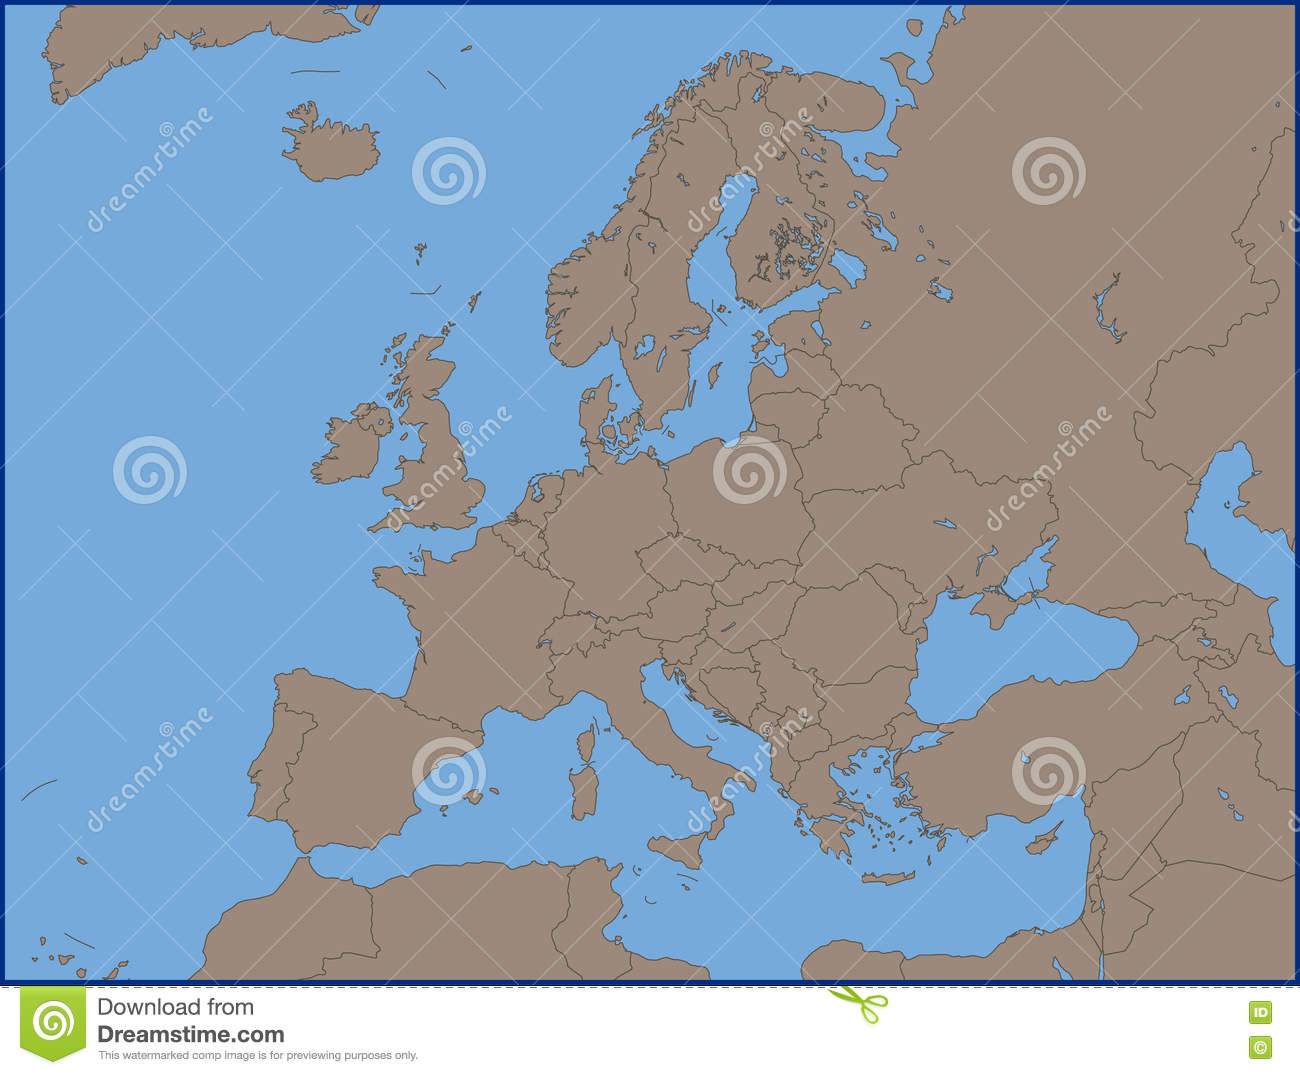 Empty Political Map Of Europe Illustration 72010130 - Megapixl